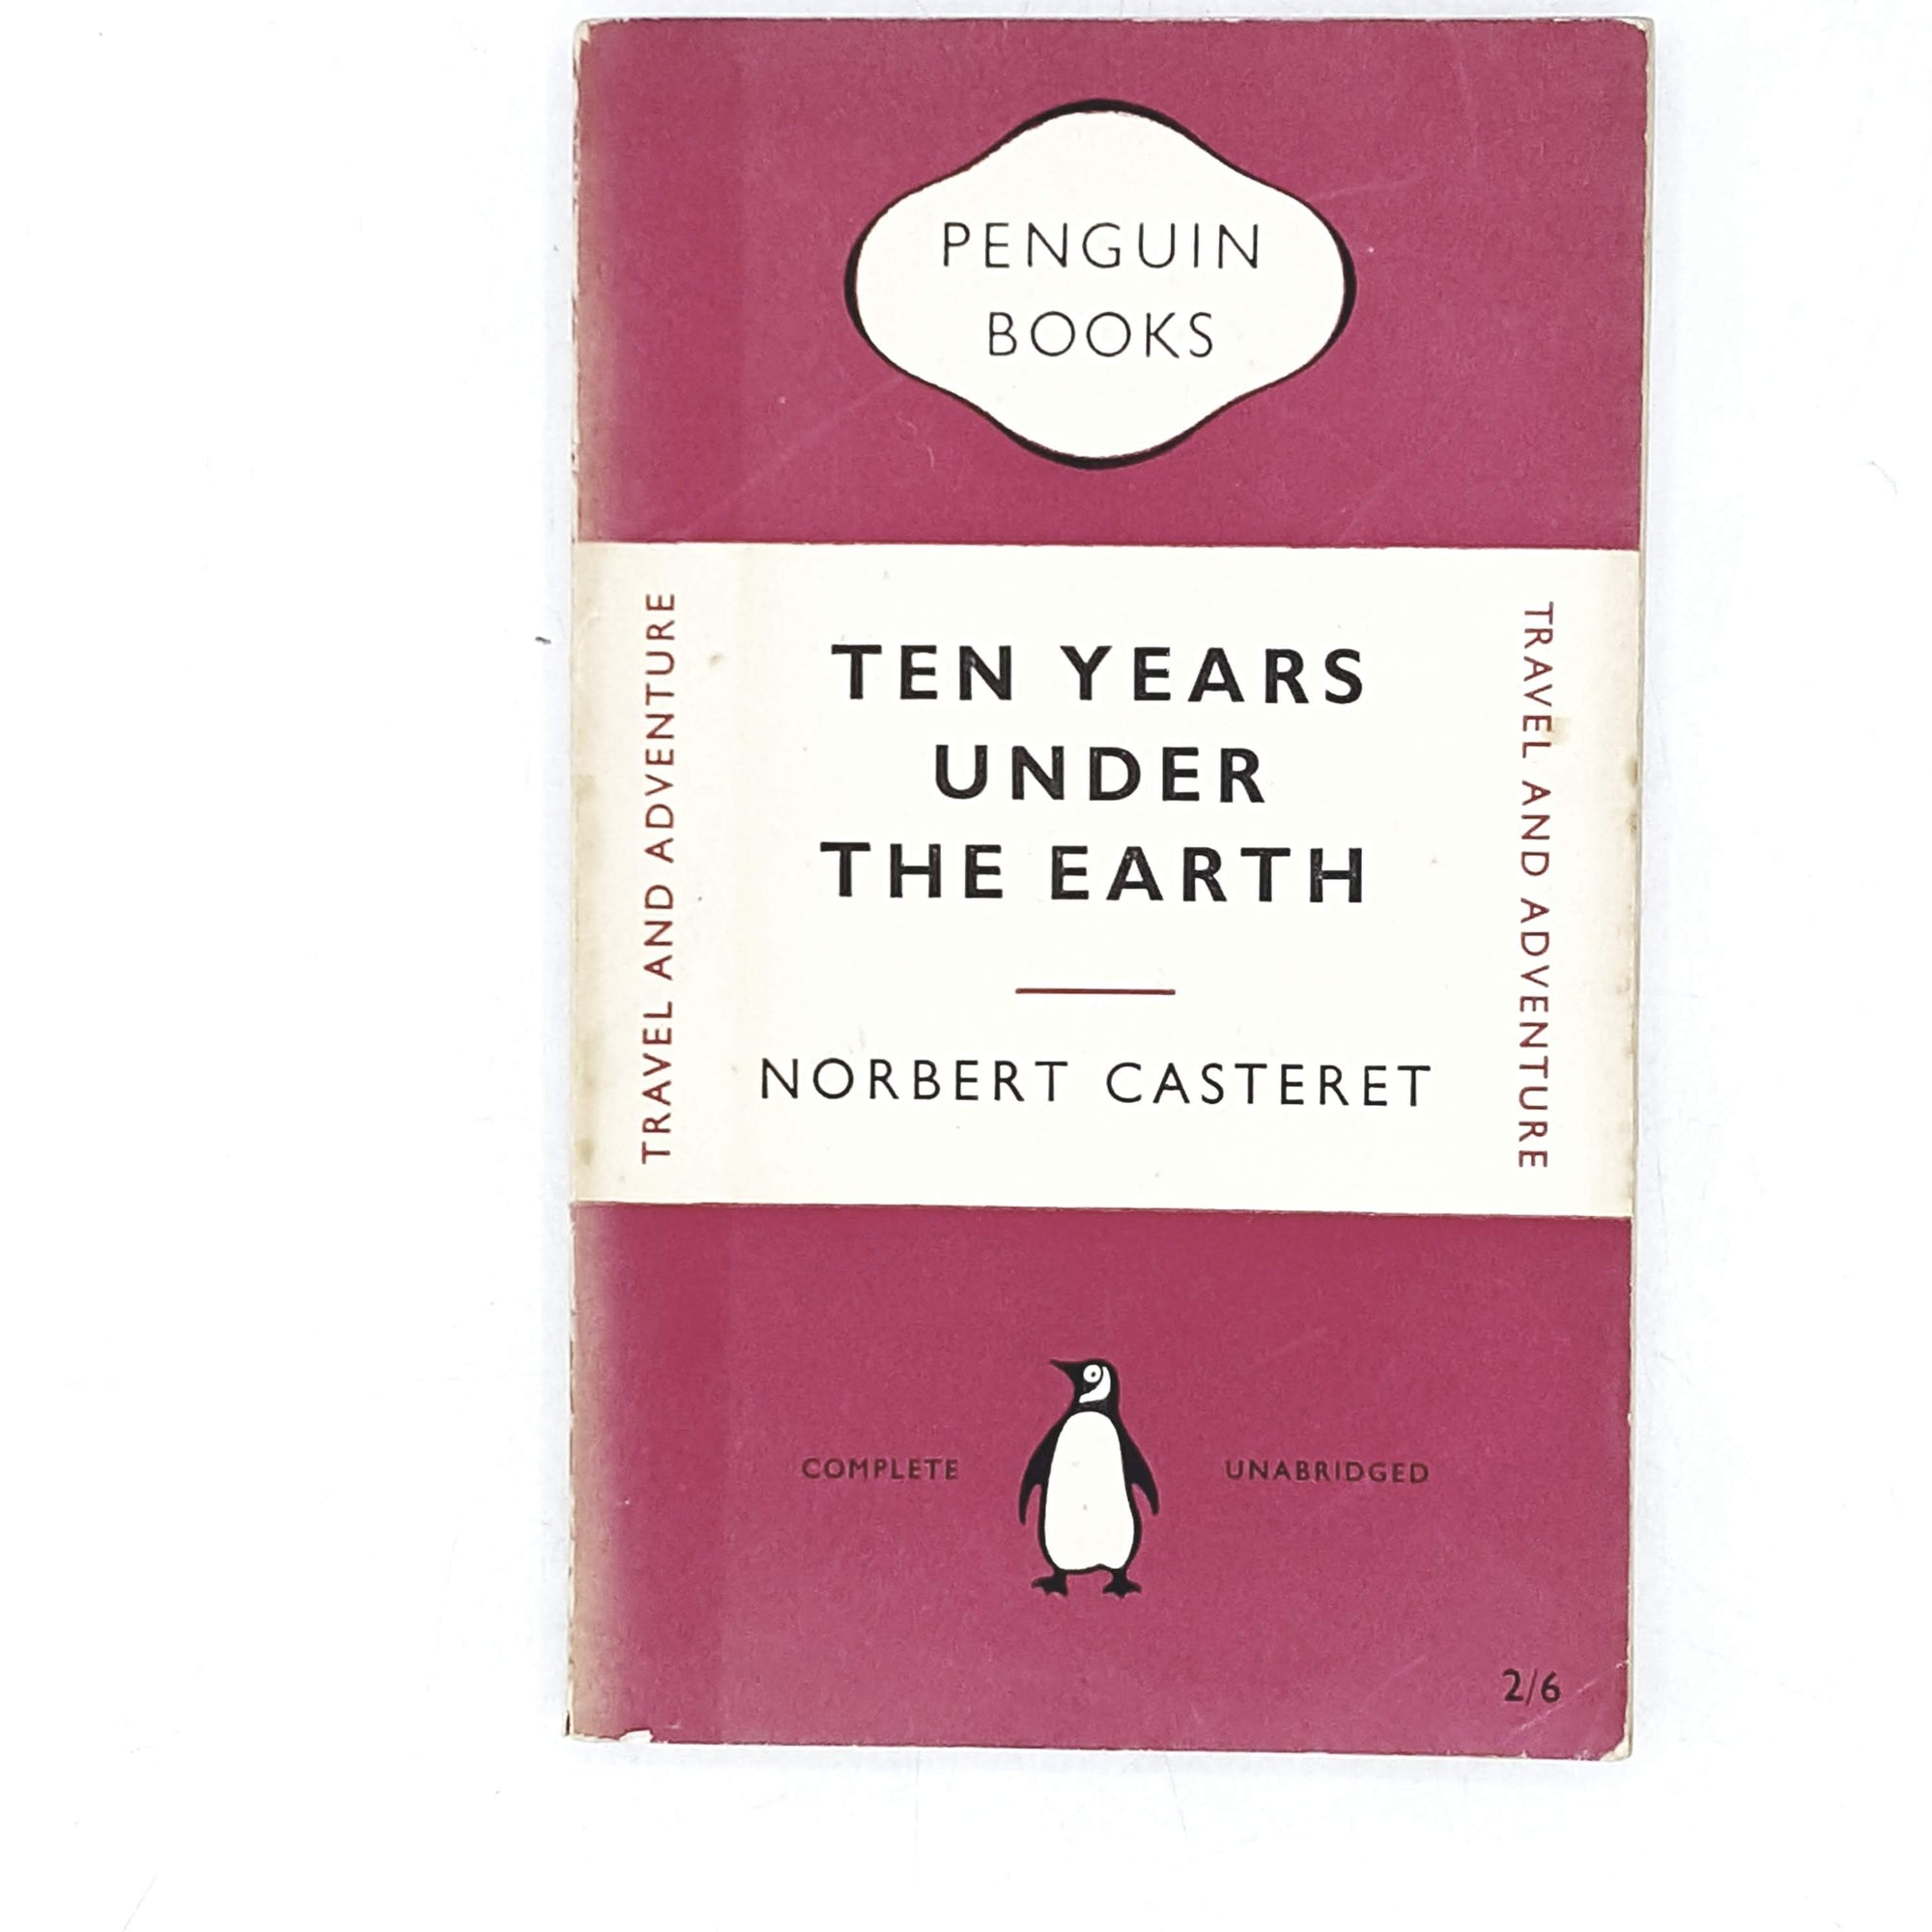 Vintage Penguin Ten Years Under The Earth by Norbert Casteret 1952